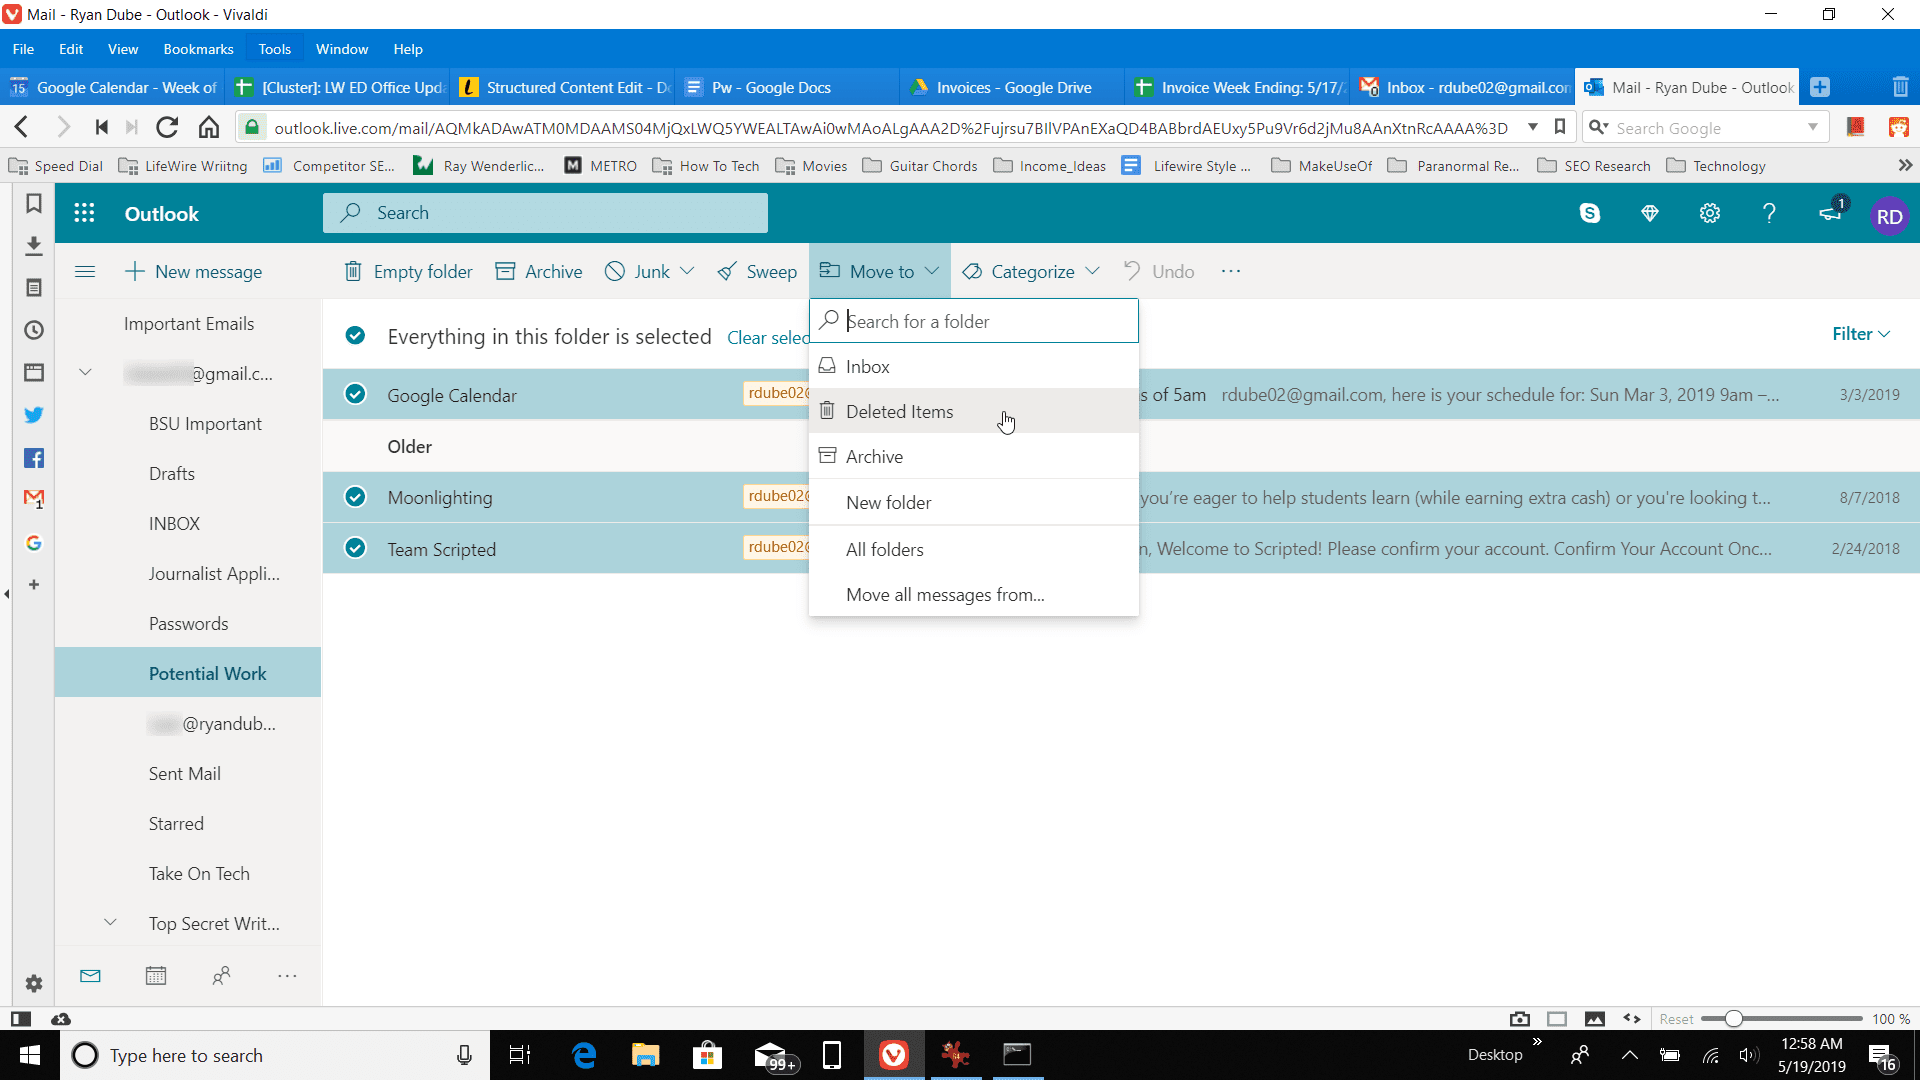 Screenshot of deleting all items in a folder in Outlook online